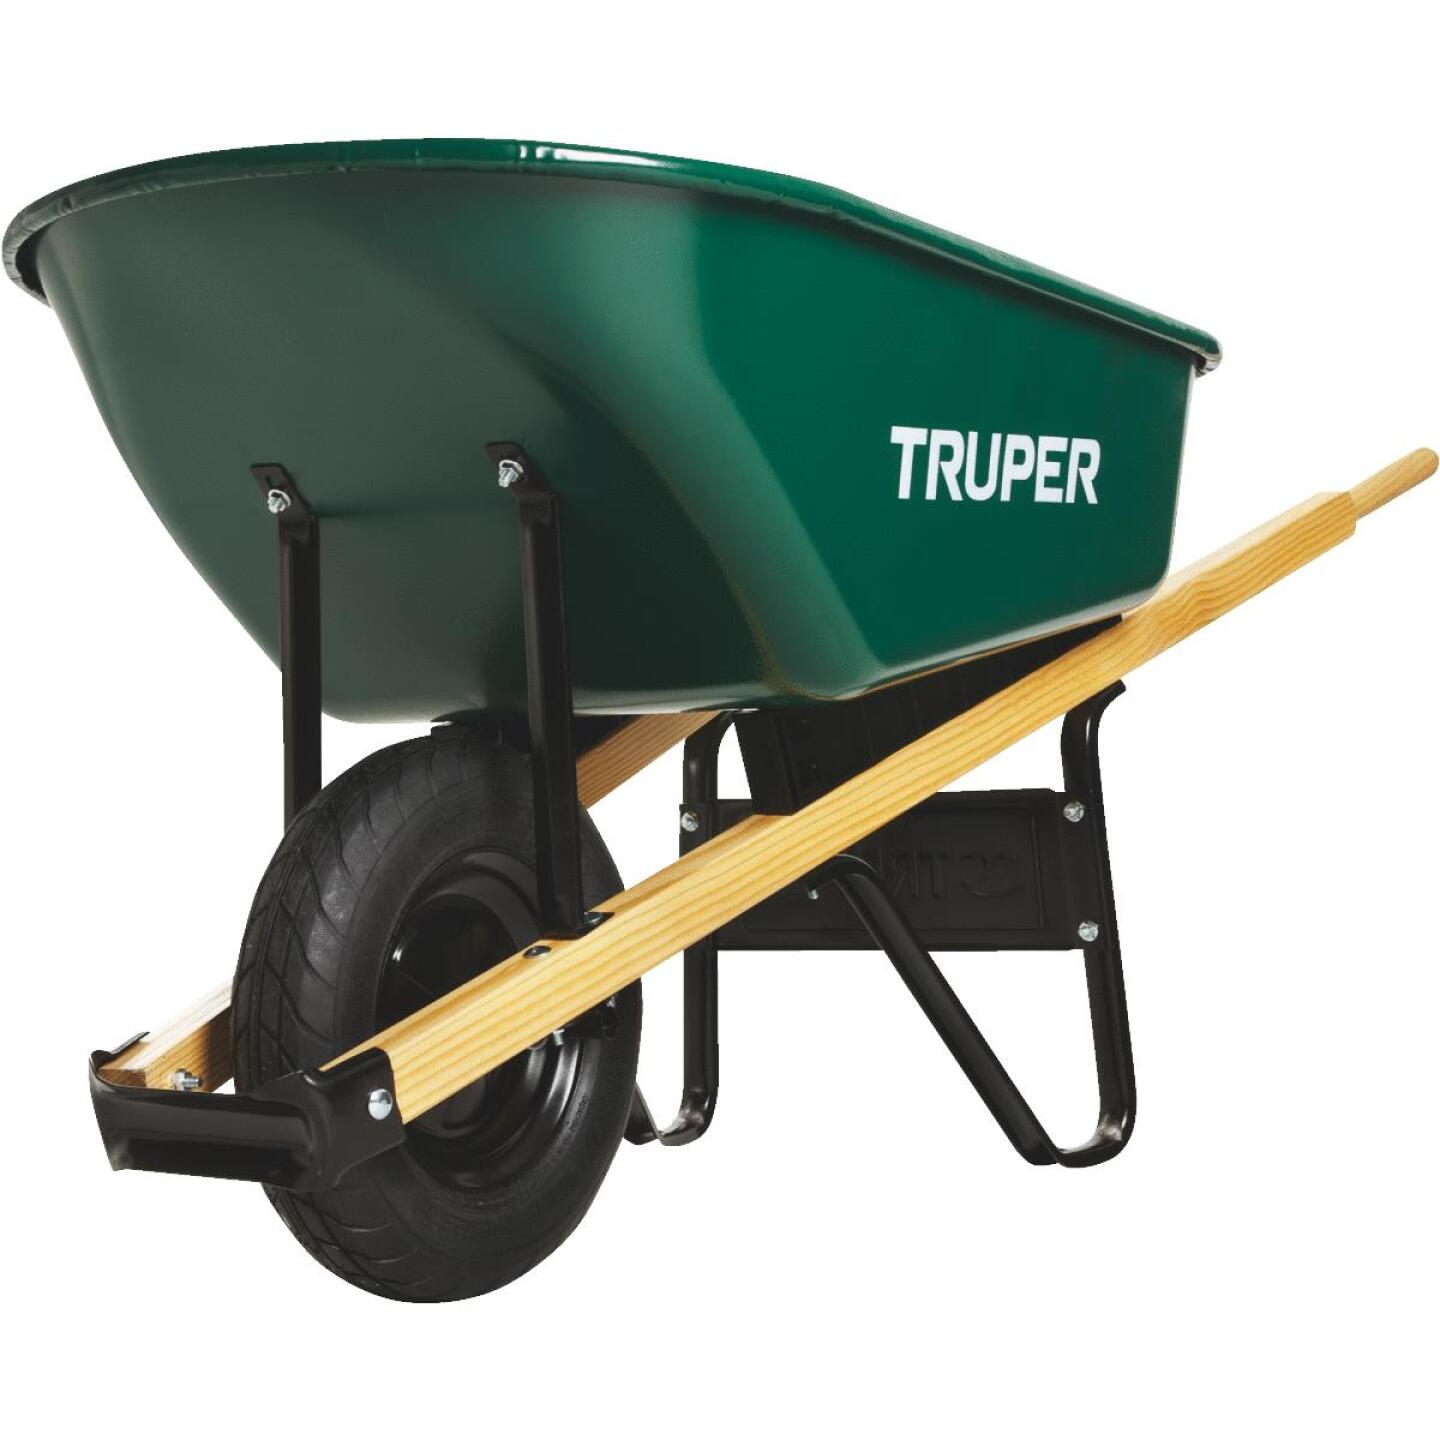 Truper 6 Cu. Ft. Steel Wheelbarrow Image 4